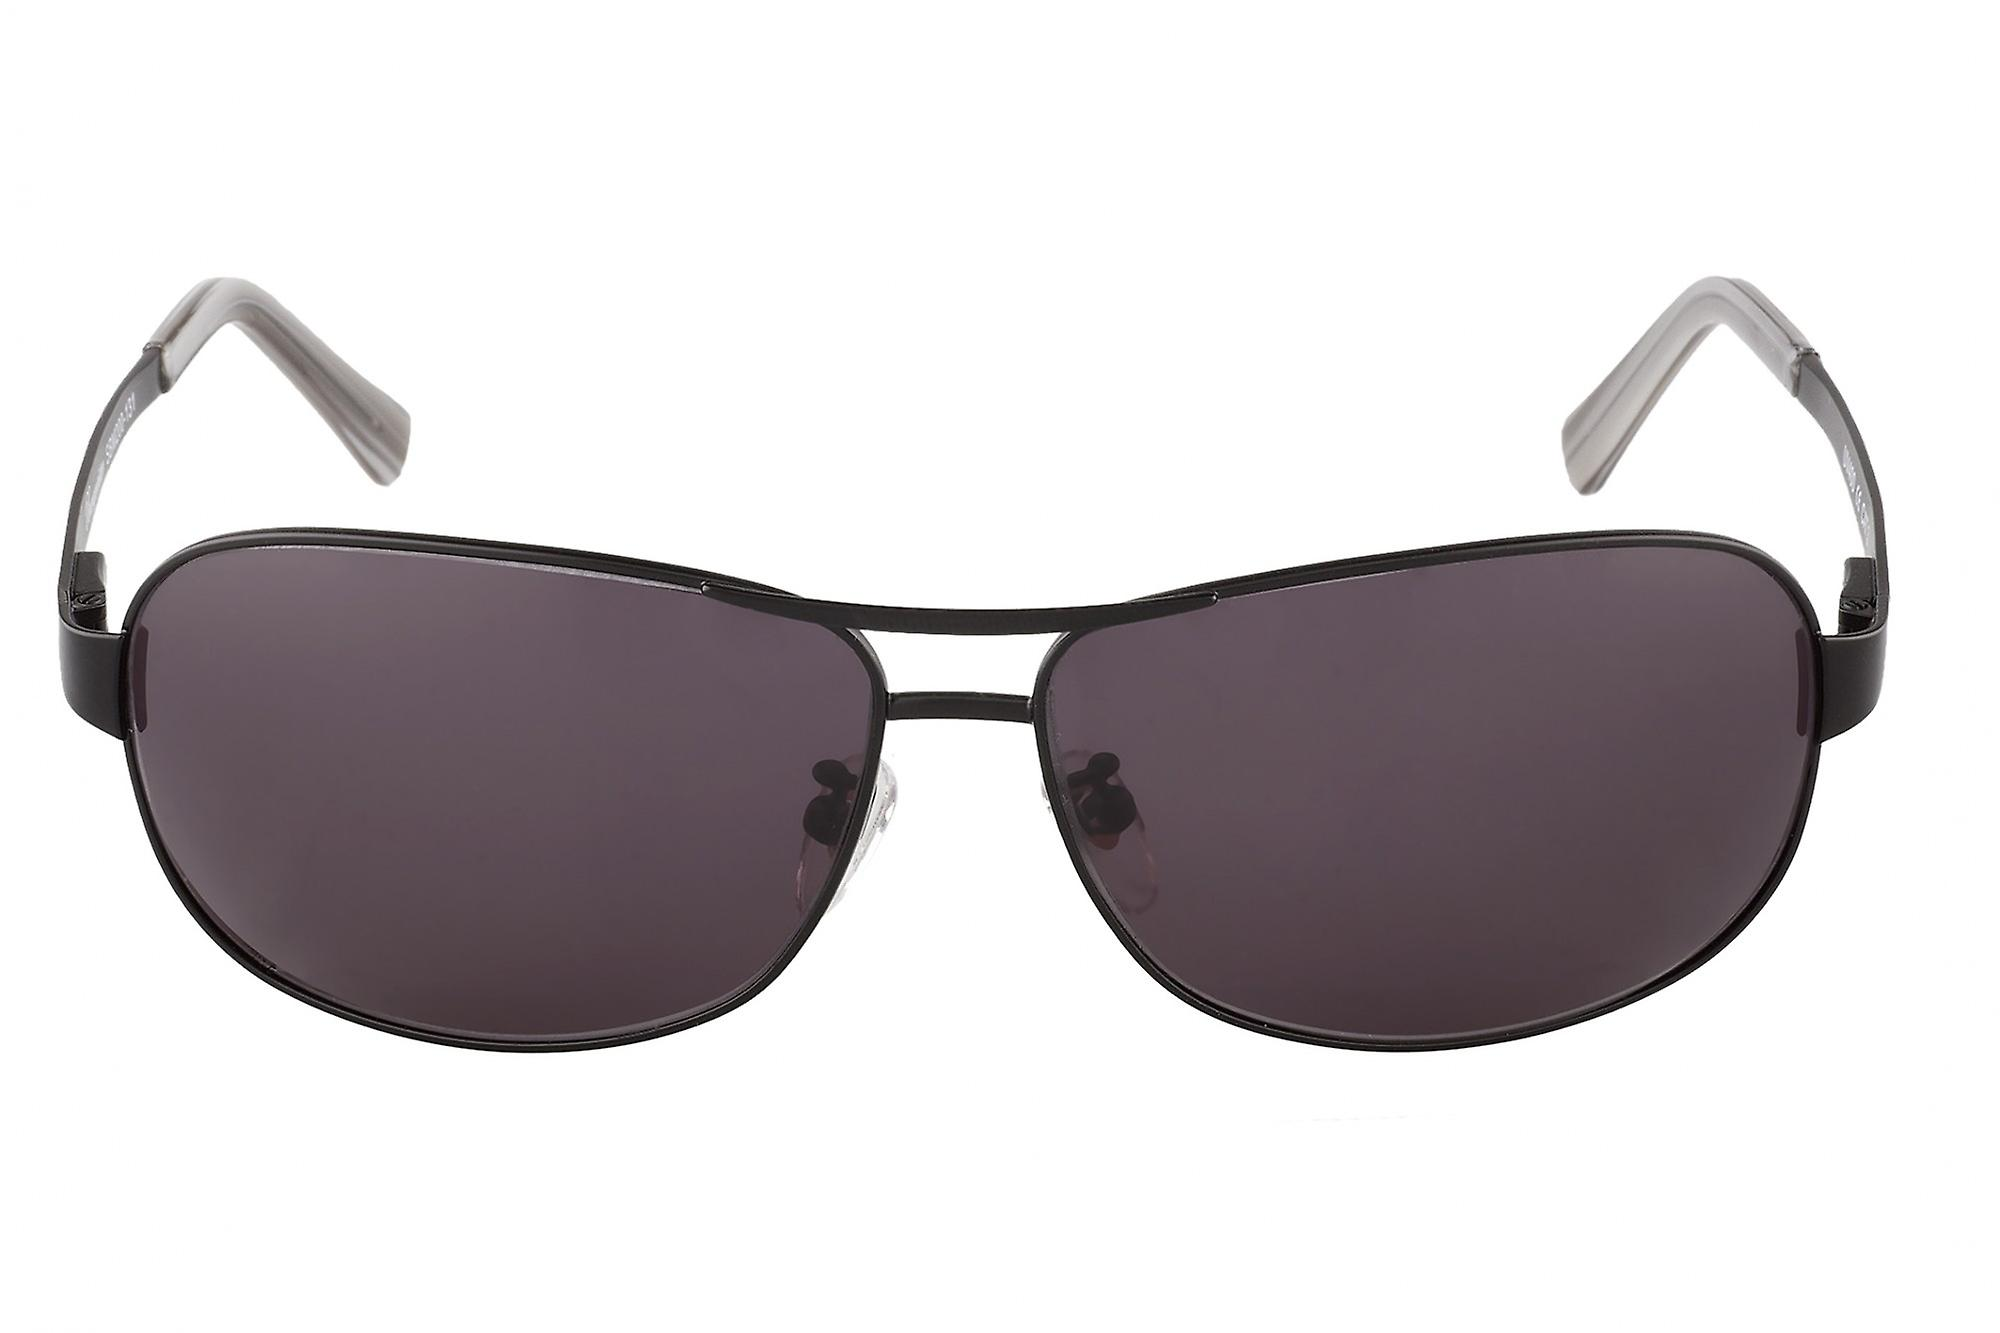 Burgmeister Gents sunglasses Arizona, SBM200-131